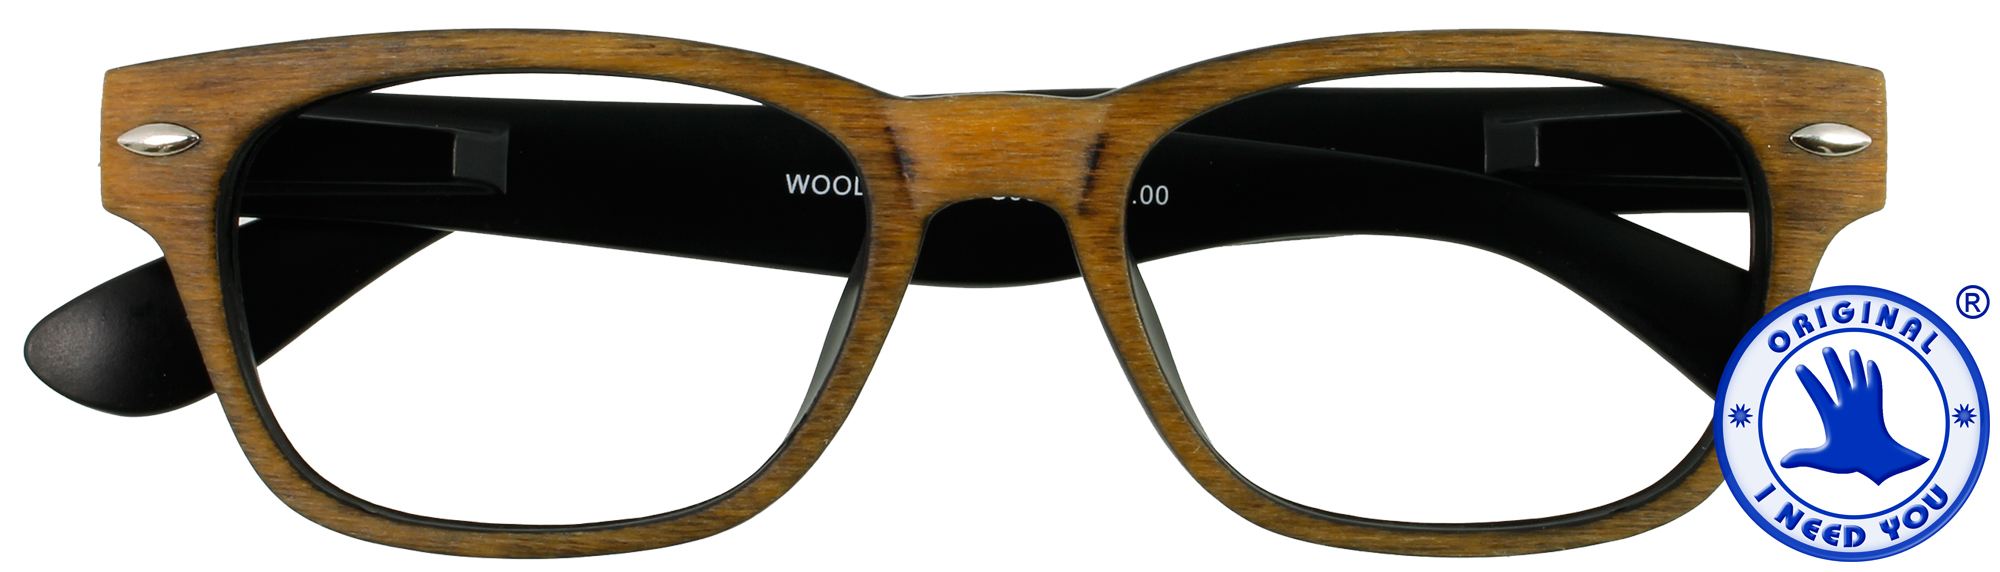 woody_wood_g55400_brown_front